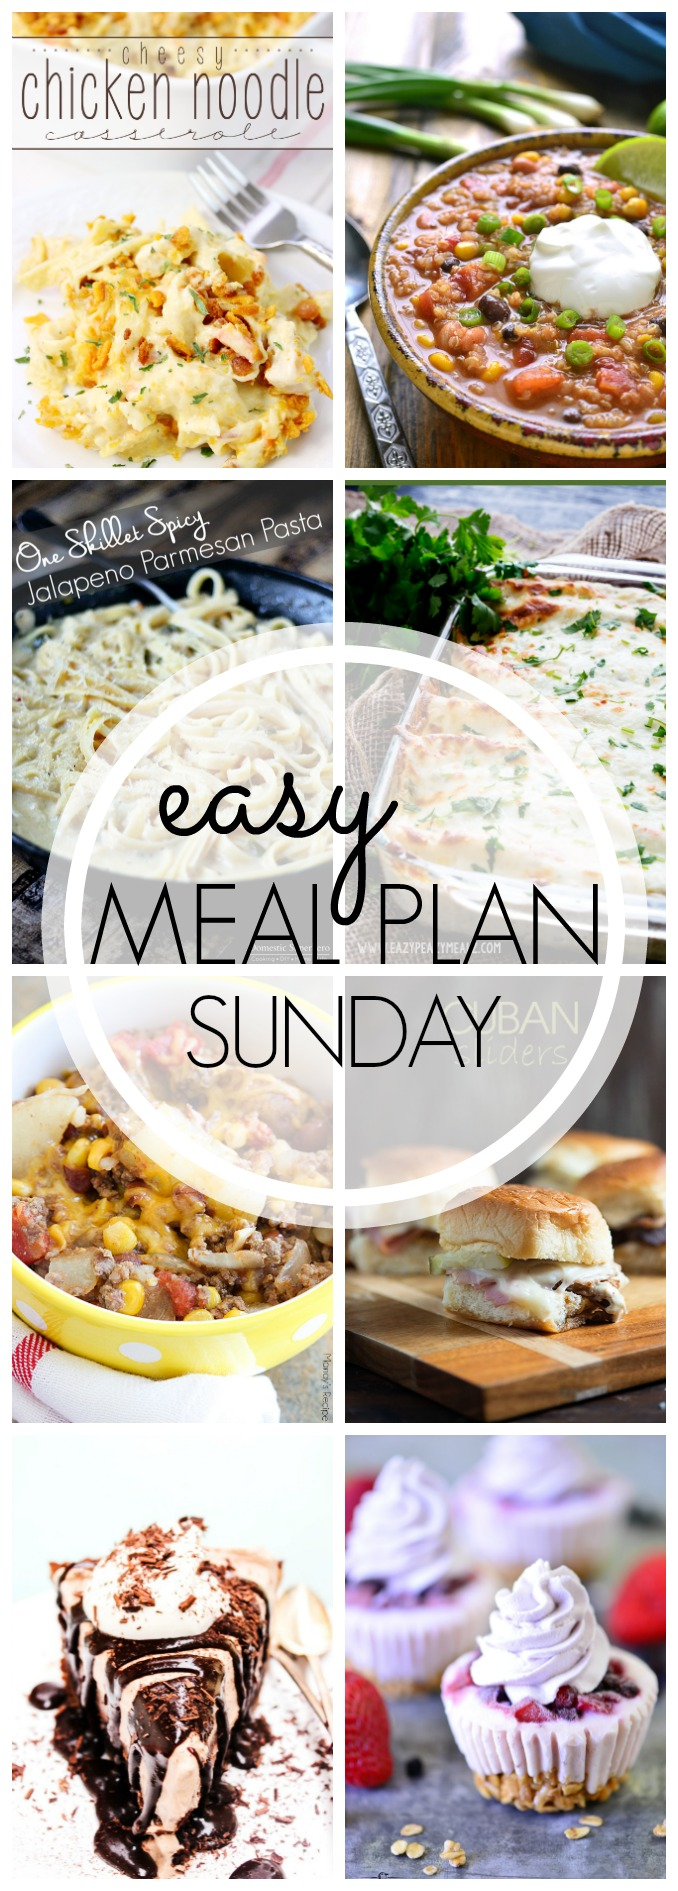 EASY MEAL PLAN PIN